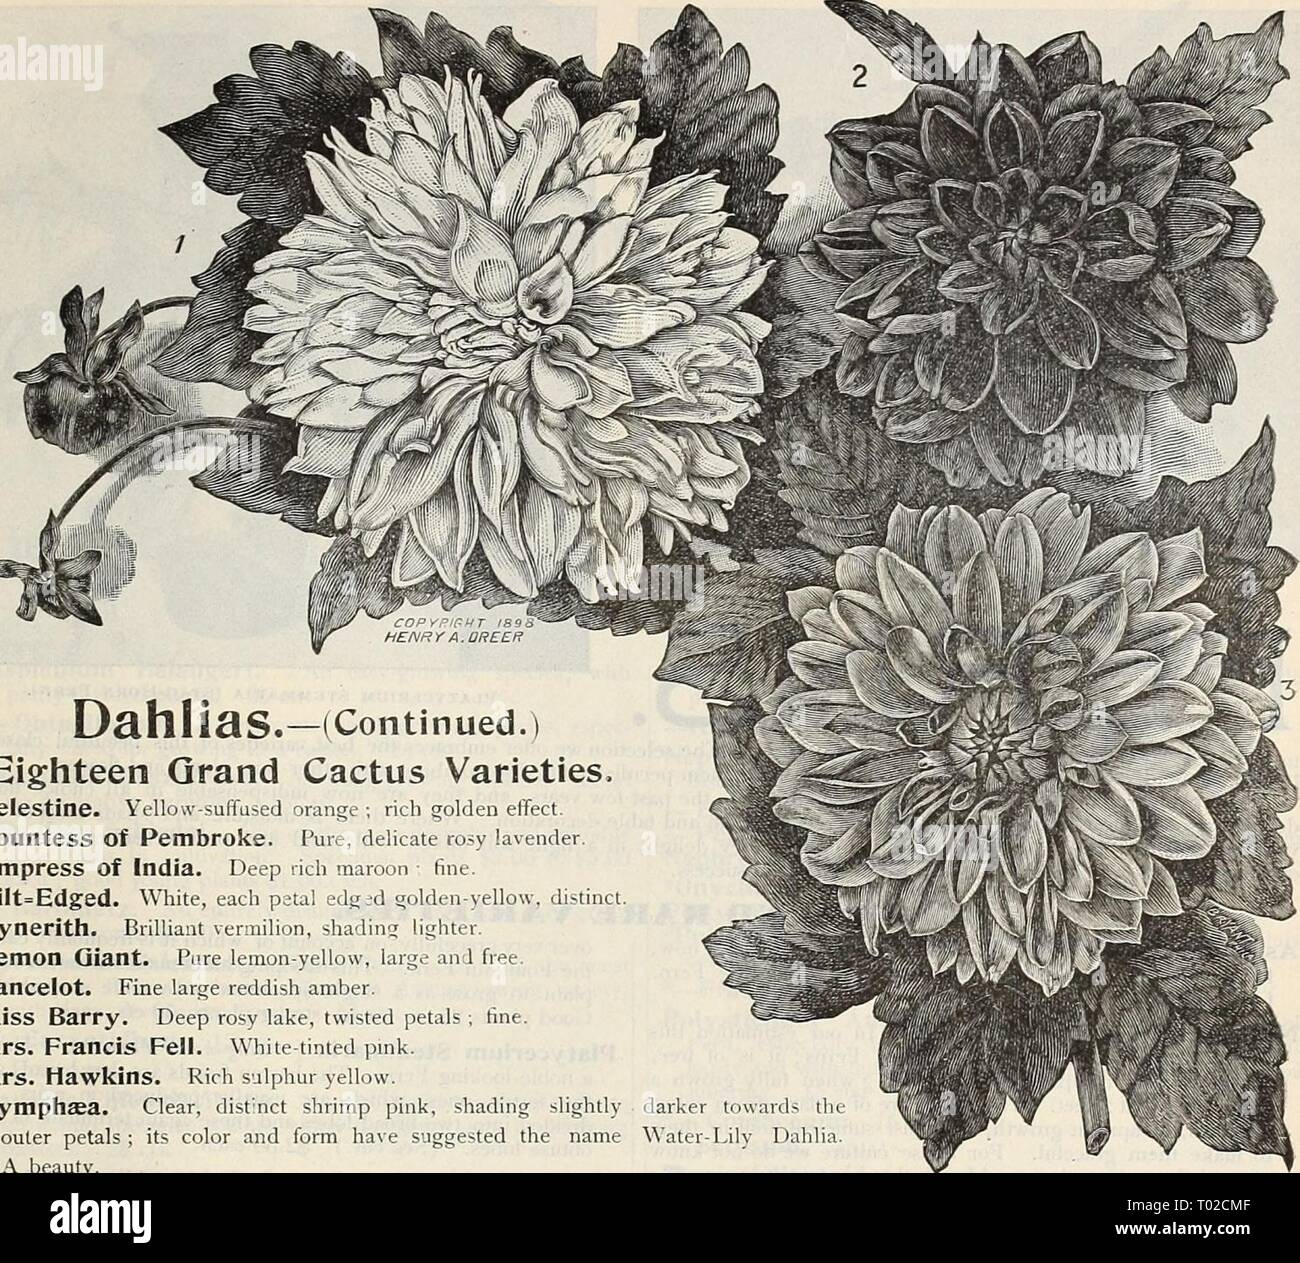 Dreer's garden calendar : 1899 . dreersgardencale1899henr Year: 1899  GARDEN AND GREENHOUSE PLANTS. 117    Dahlias. Eighteen Grand Cactus Varieties, Celestine. Yellow-suffused orange ; rich golden effect. Countess Of Pembroke. Pure, delicate rosy lavender. Empress Of India. Deep rich maroon : fine. GiIt=Edged. White, each patal edgid golden-yellow Kynerith. Brilliant vermilion, shading lighter. Lemon Giant. Pure lemon-yellow, large and free. Lancelot. Fine large reddish amber. Miss Barry. Deep rosy lake, twisted petals ; fine. Mrs. Francis Fell. White-tinted pink. Mrs. Hawkins. Rich sulphur ye - Stock Image